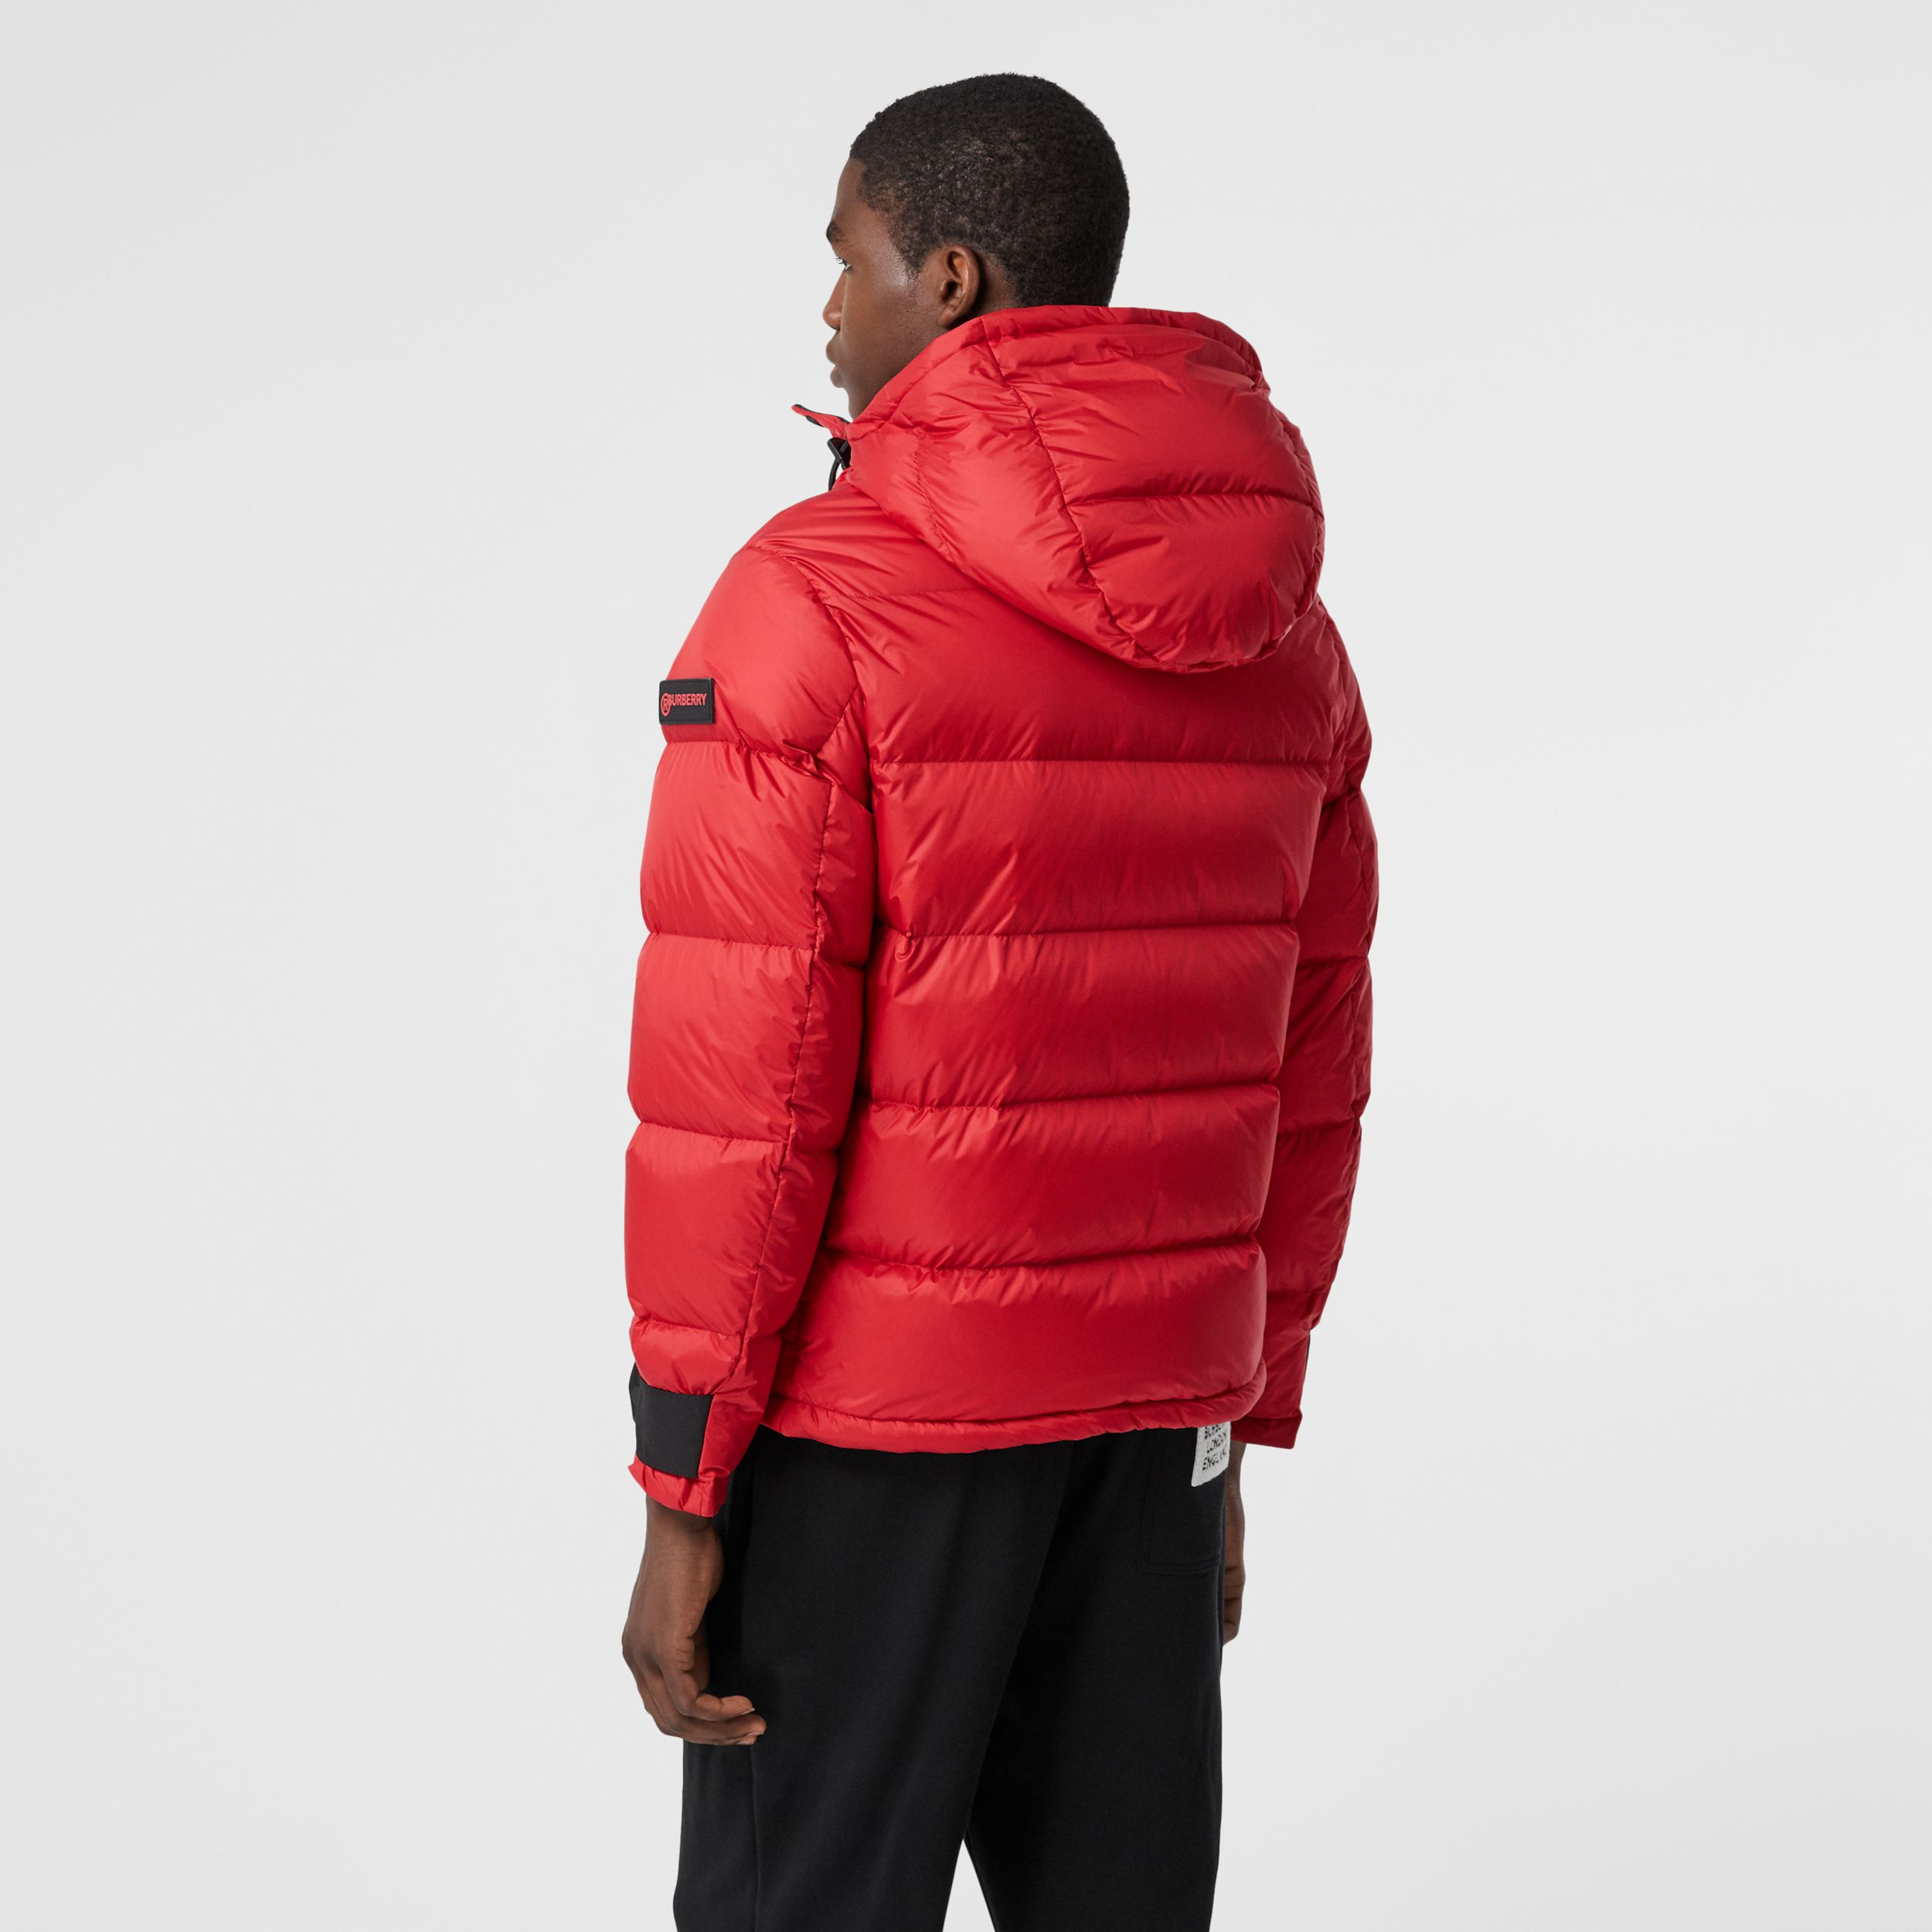 Logo Graphic Hooded Puffer Jacket in Bright Red - Men | Burberry - 3